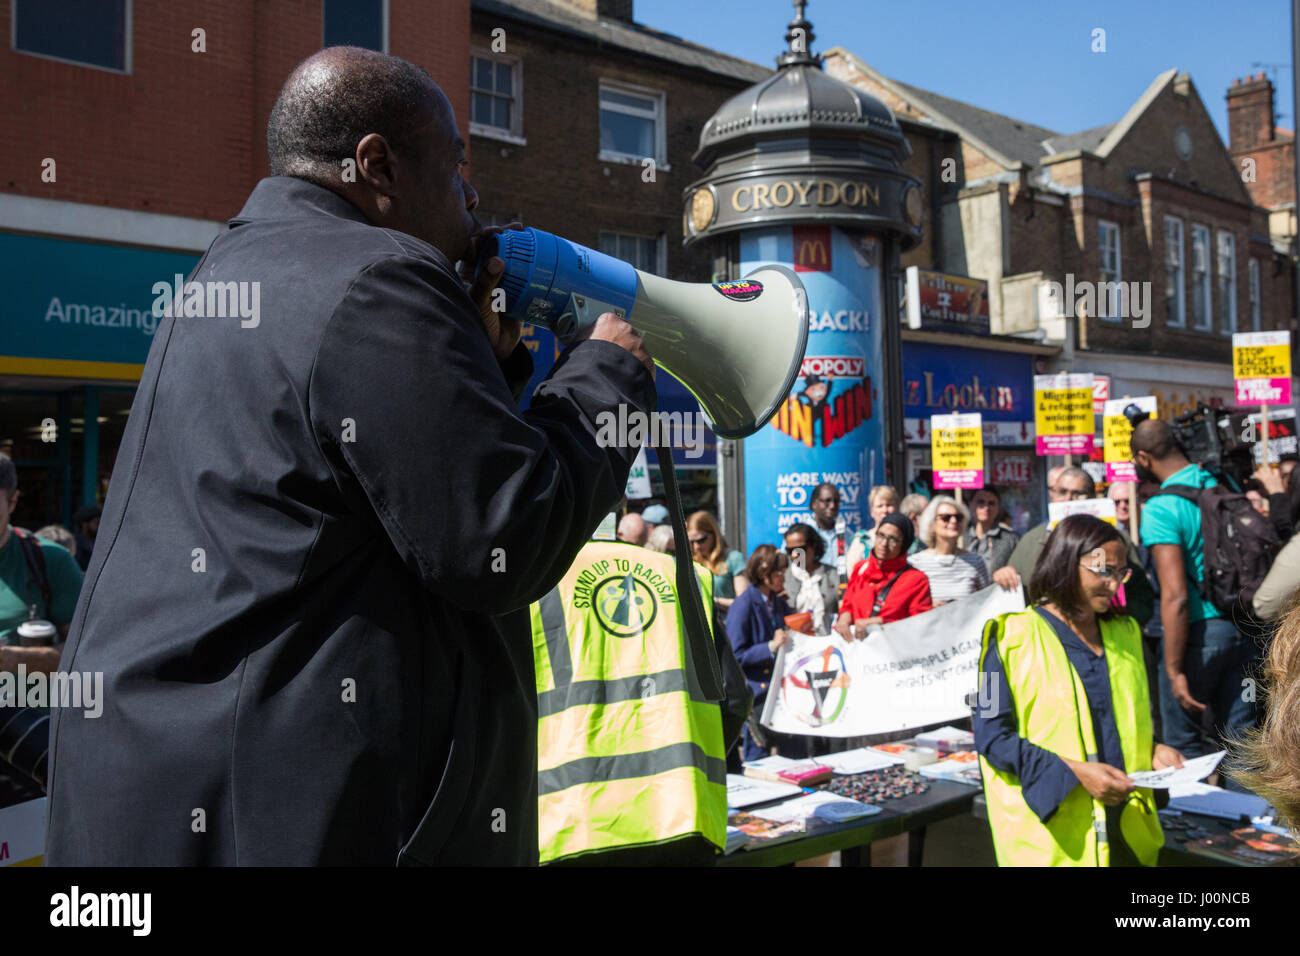 Croydon, UK. 8th Apr, 2017. Local people and anti-racism campaigners join a Unity protest organised by Stand Up - Stock Image